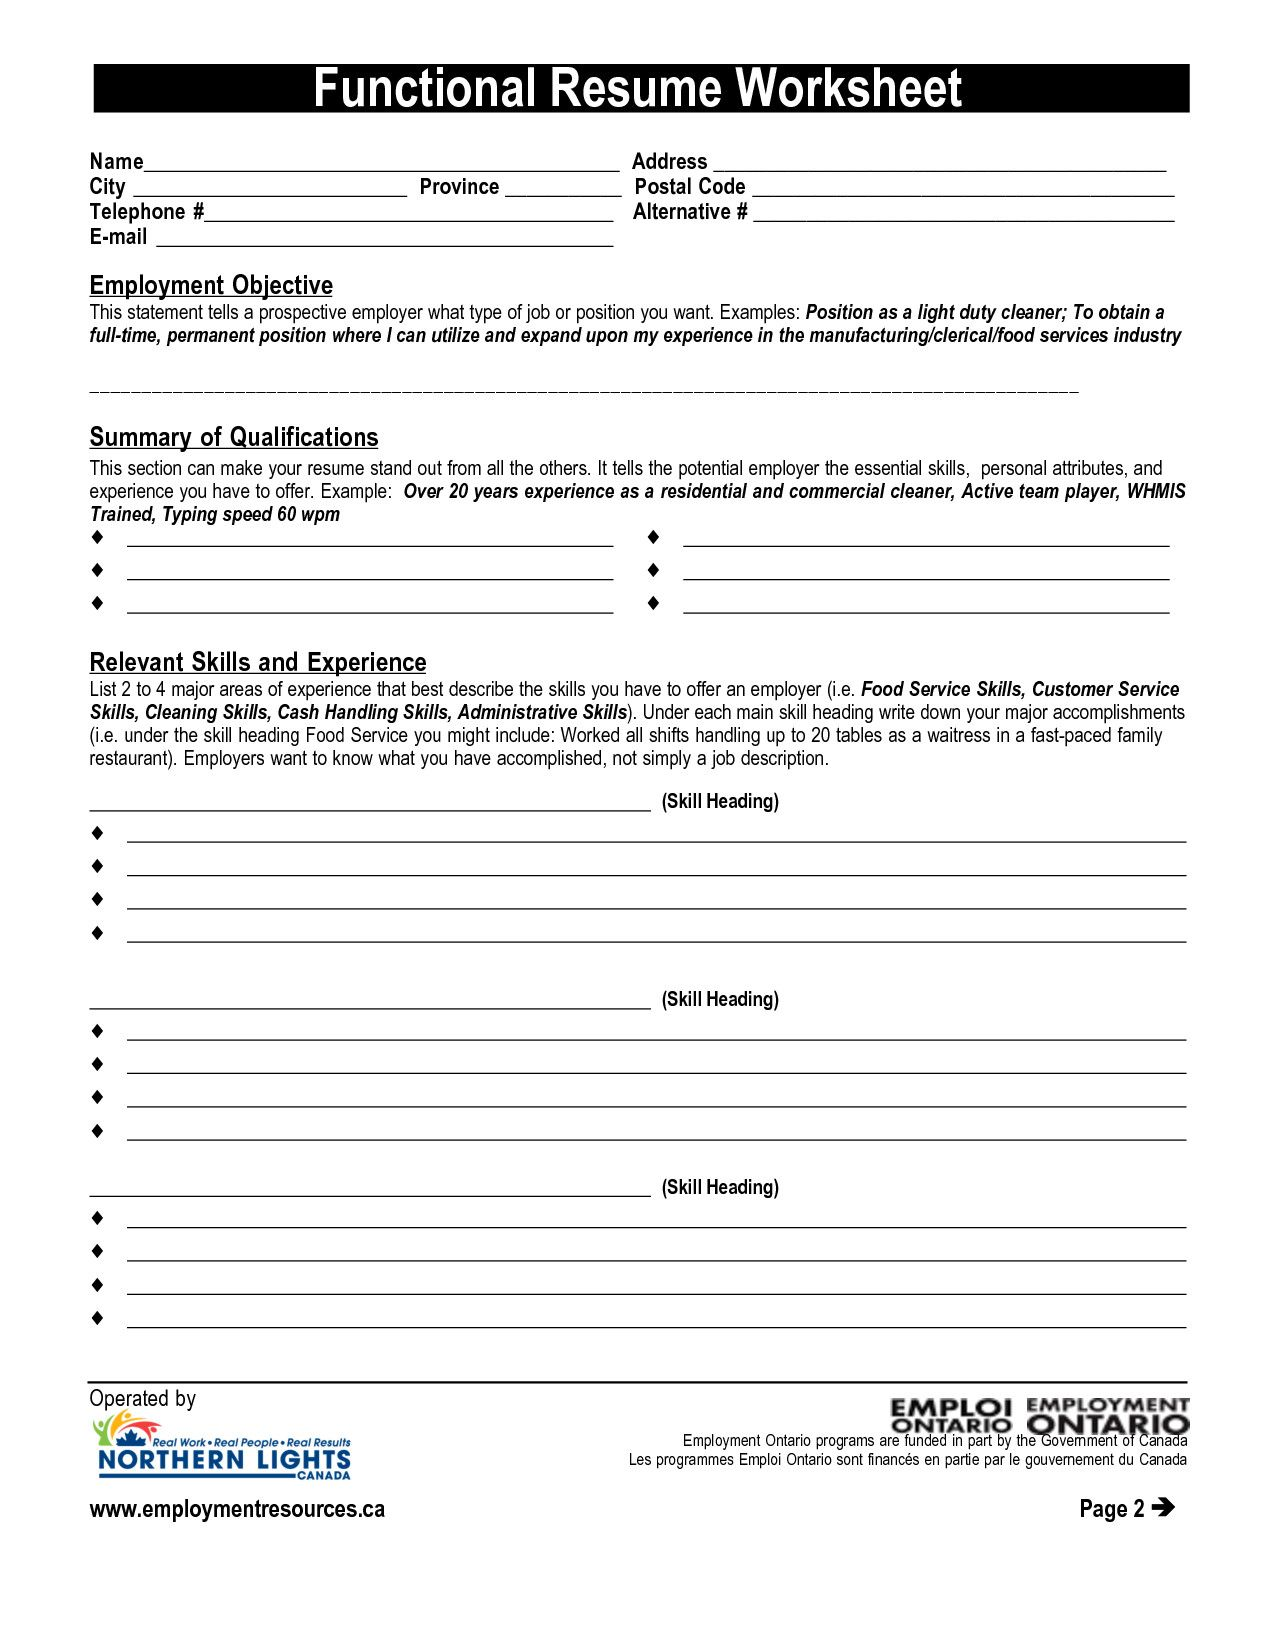 Resume Worksheet For Adults Ministry Of Education And